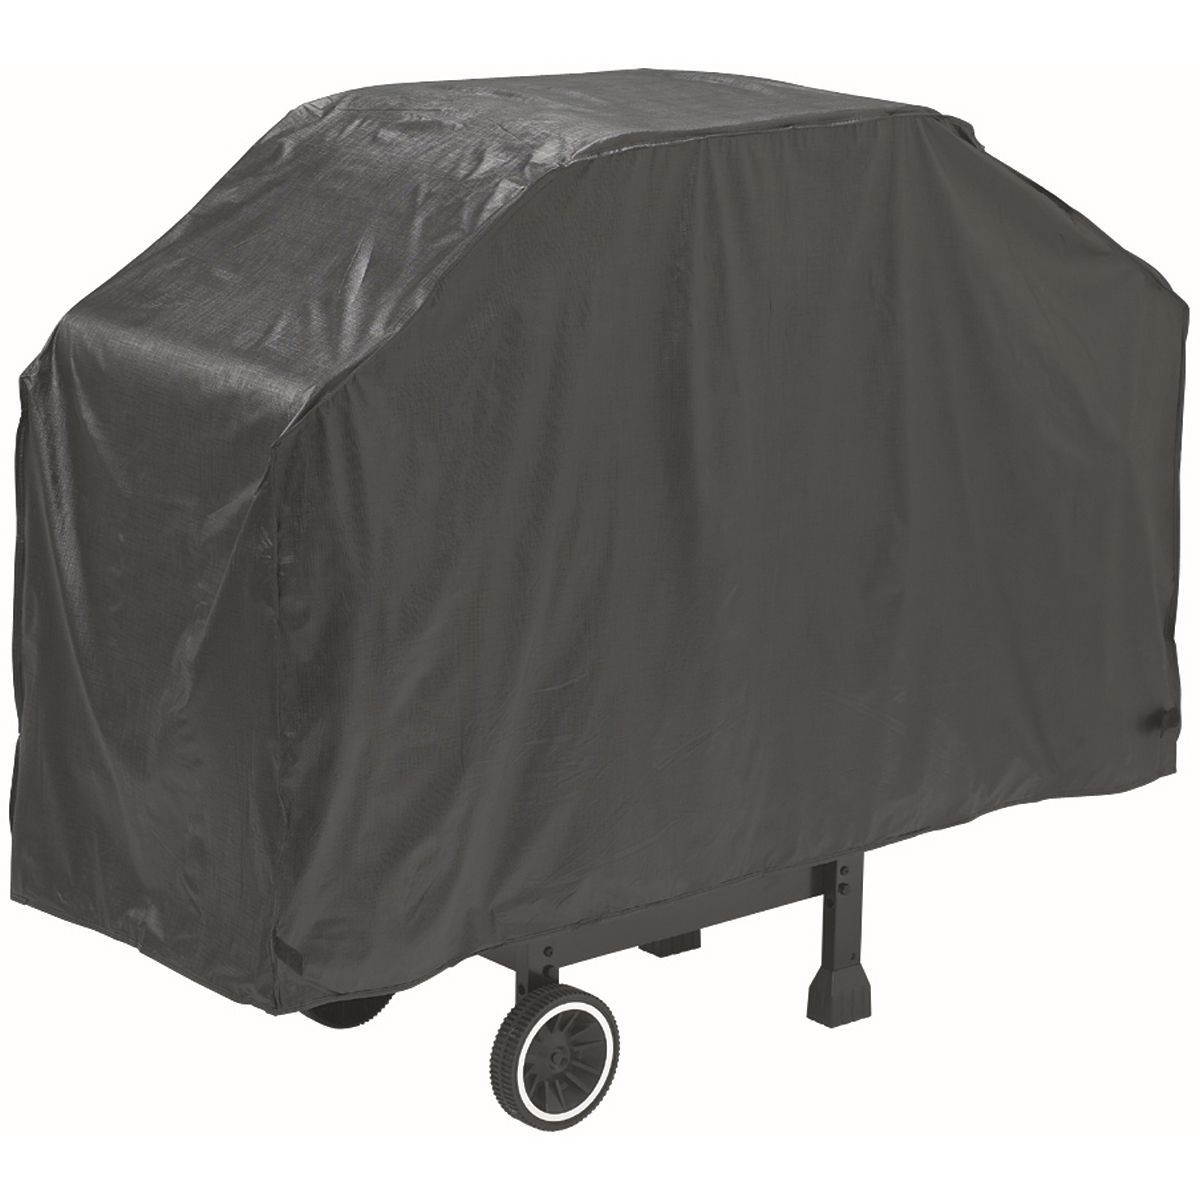 "GrillPro 84160 60"" X 21"" X 38"" Full Cart Grill Covers Assorted Colors"